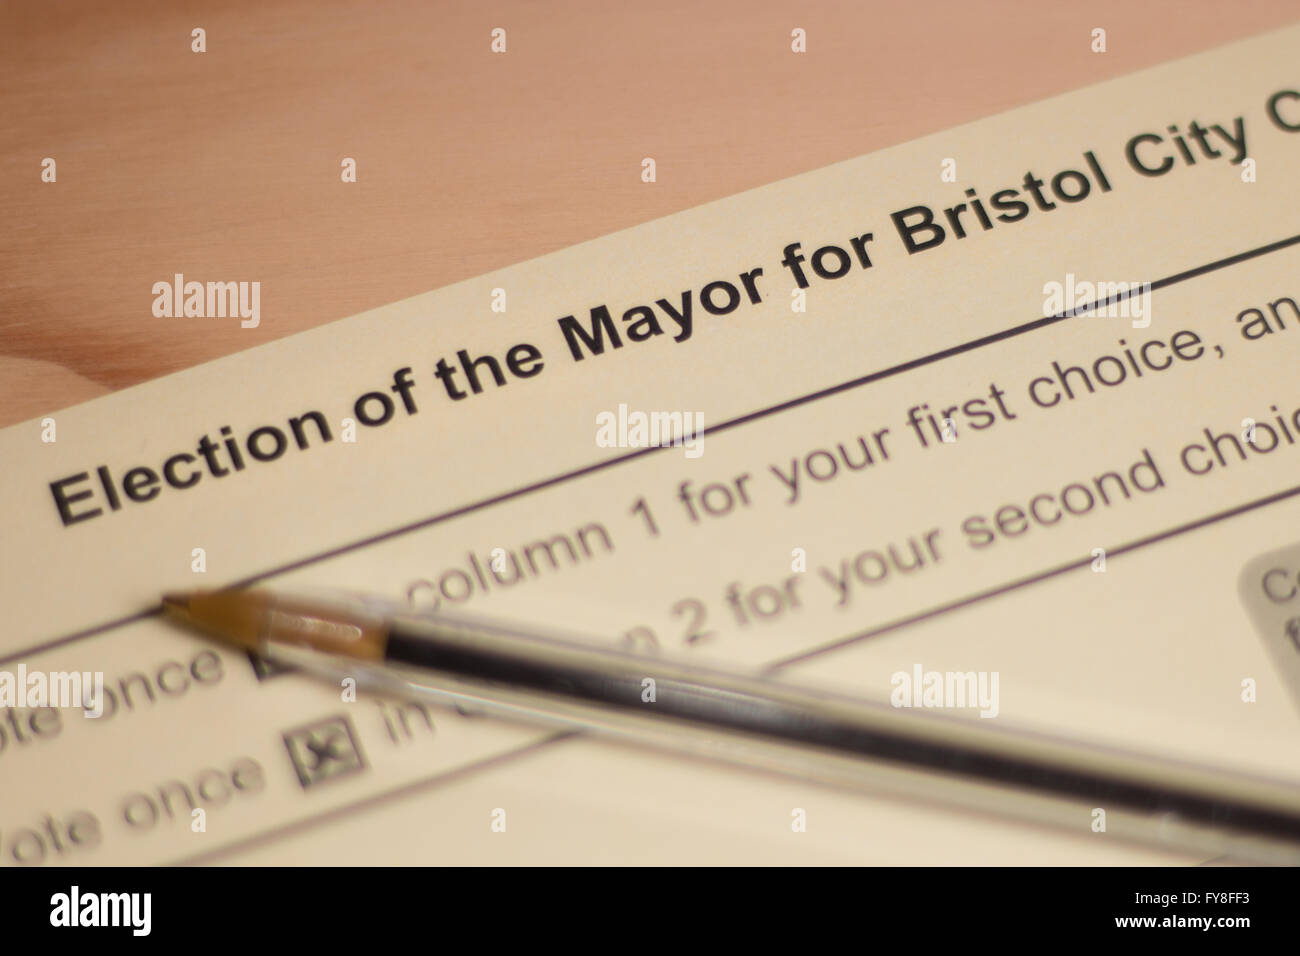 Close of a ballot for the Mayor Election in Bristol - Stock Image